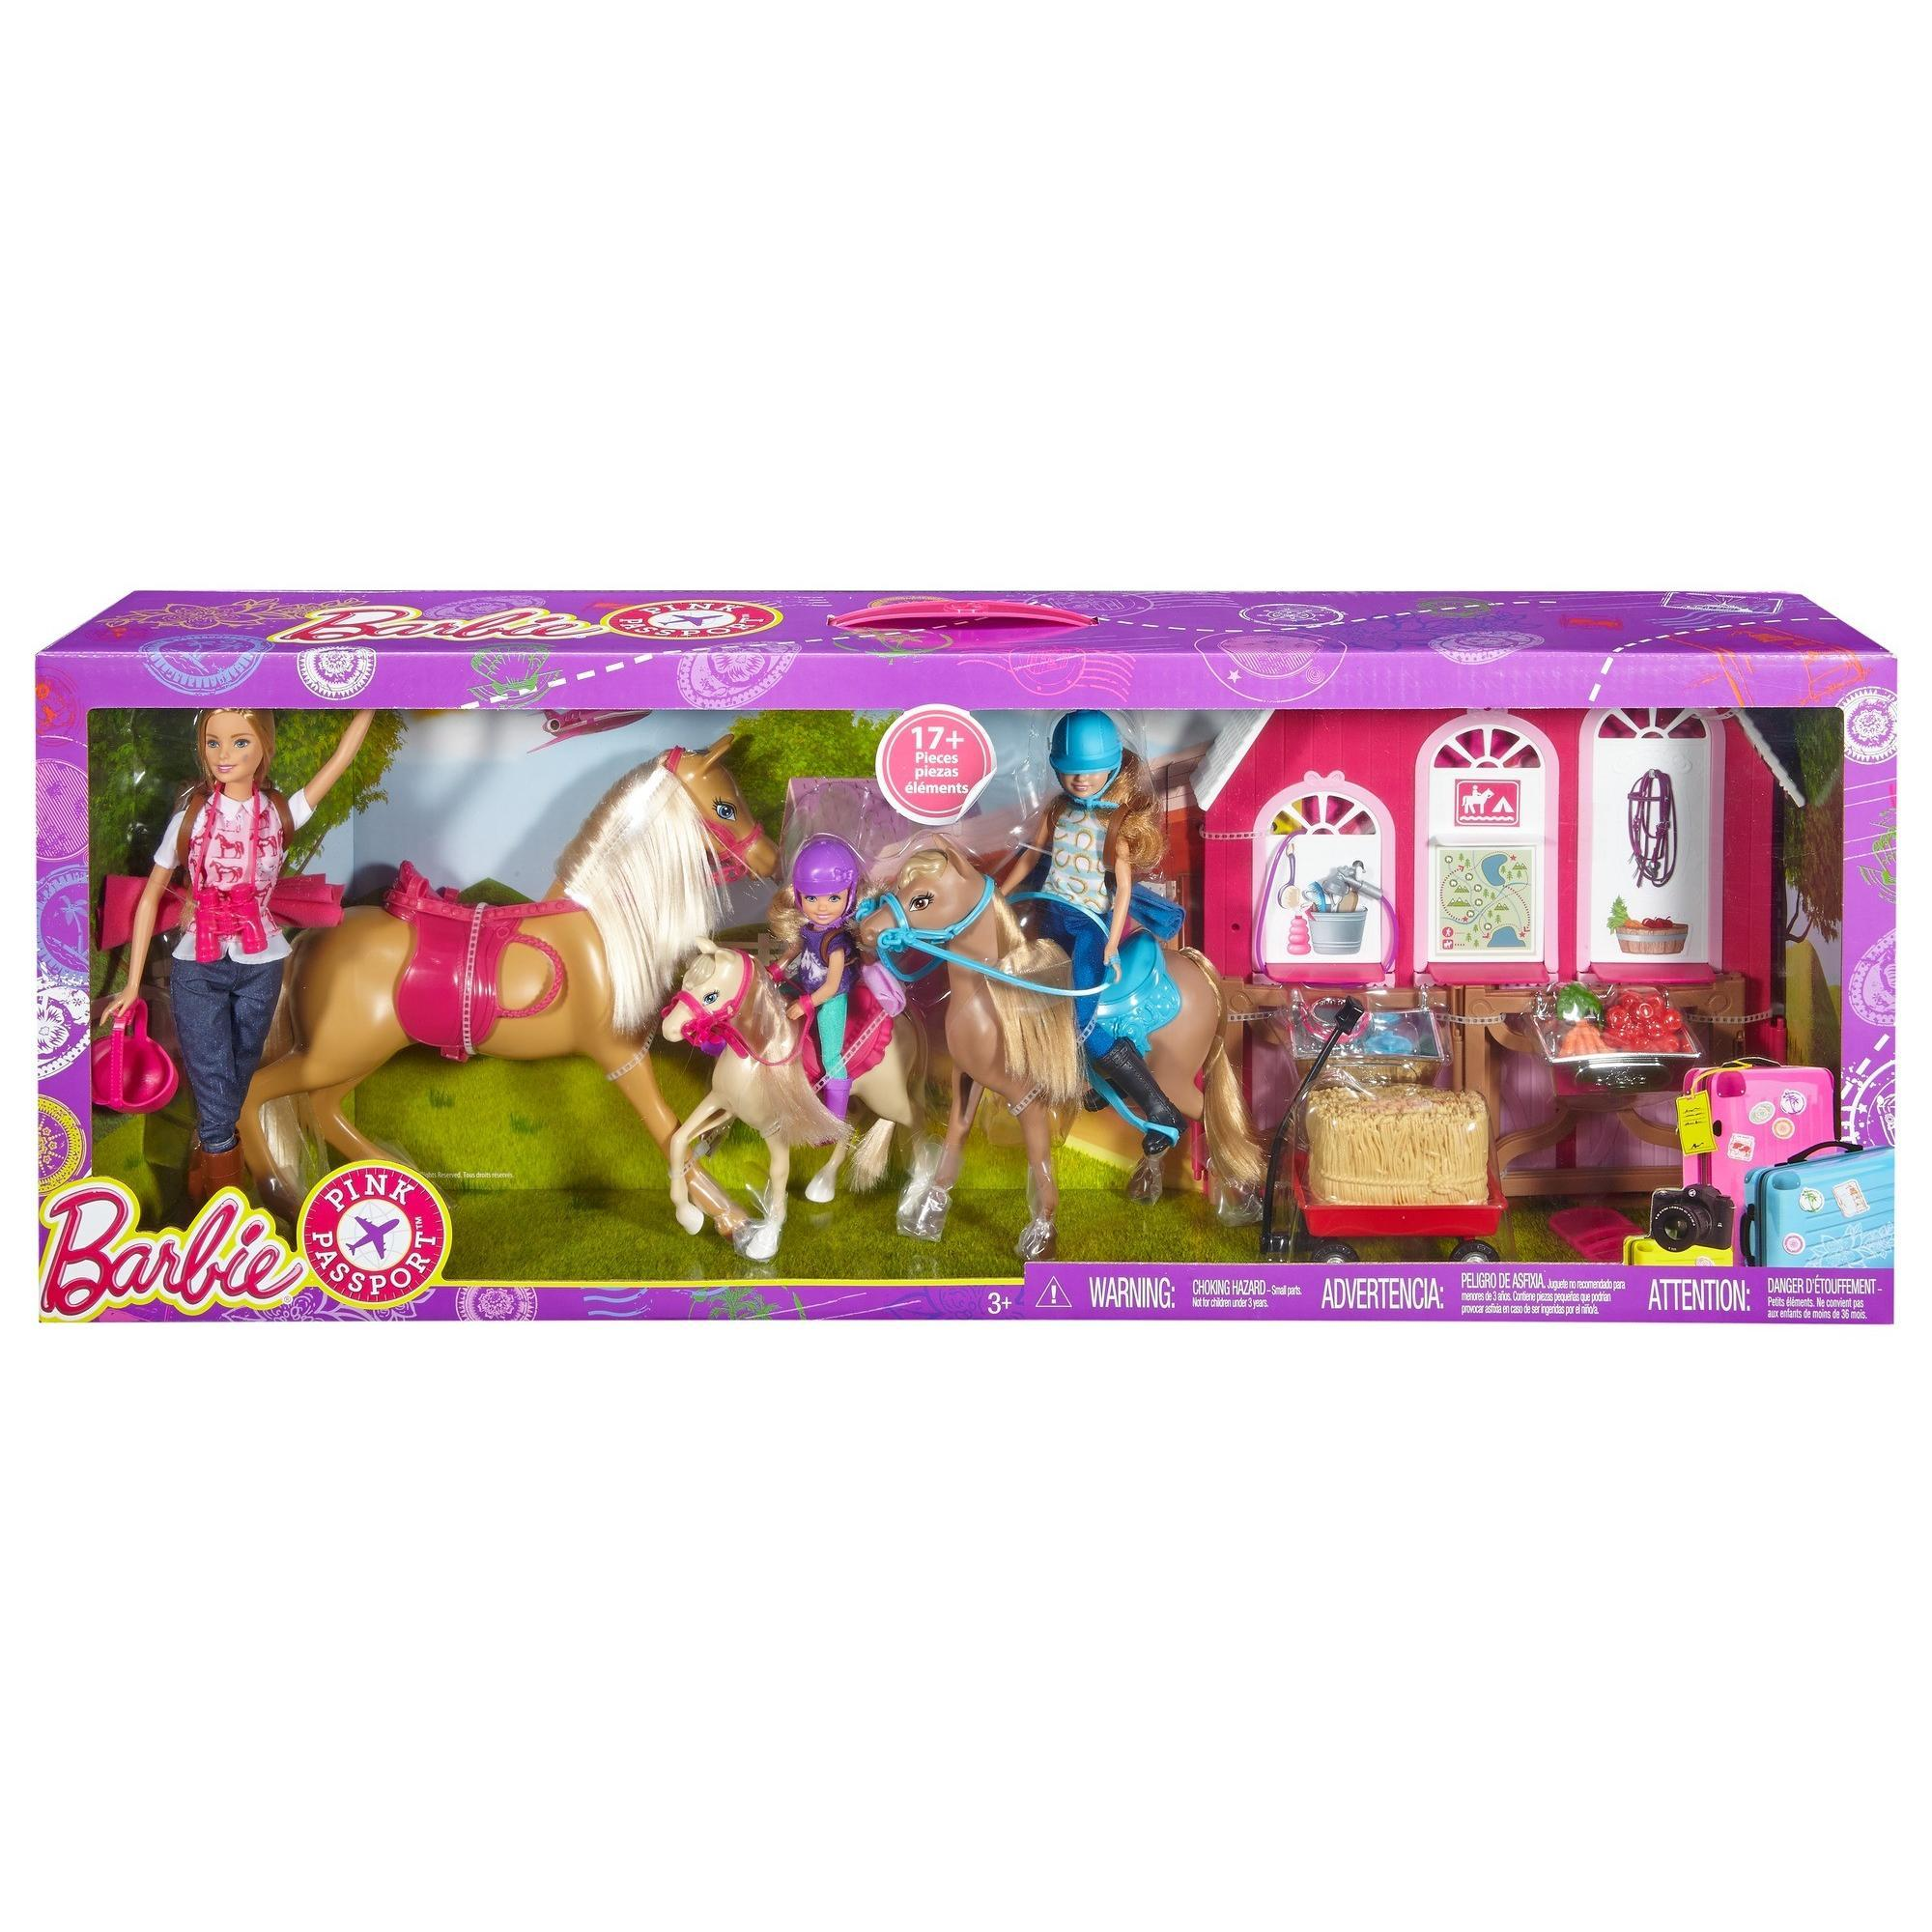 Barbie Horse Ranch Playset With Barbie Stacie And Chelsea Doll Walmart Com Walmart Com